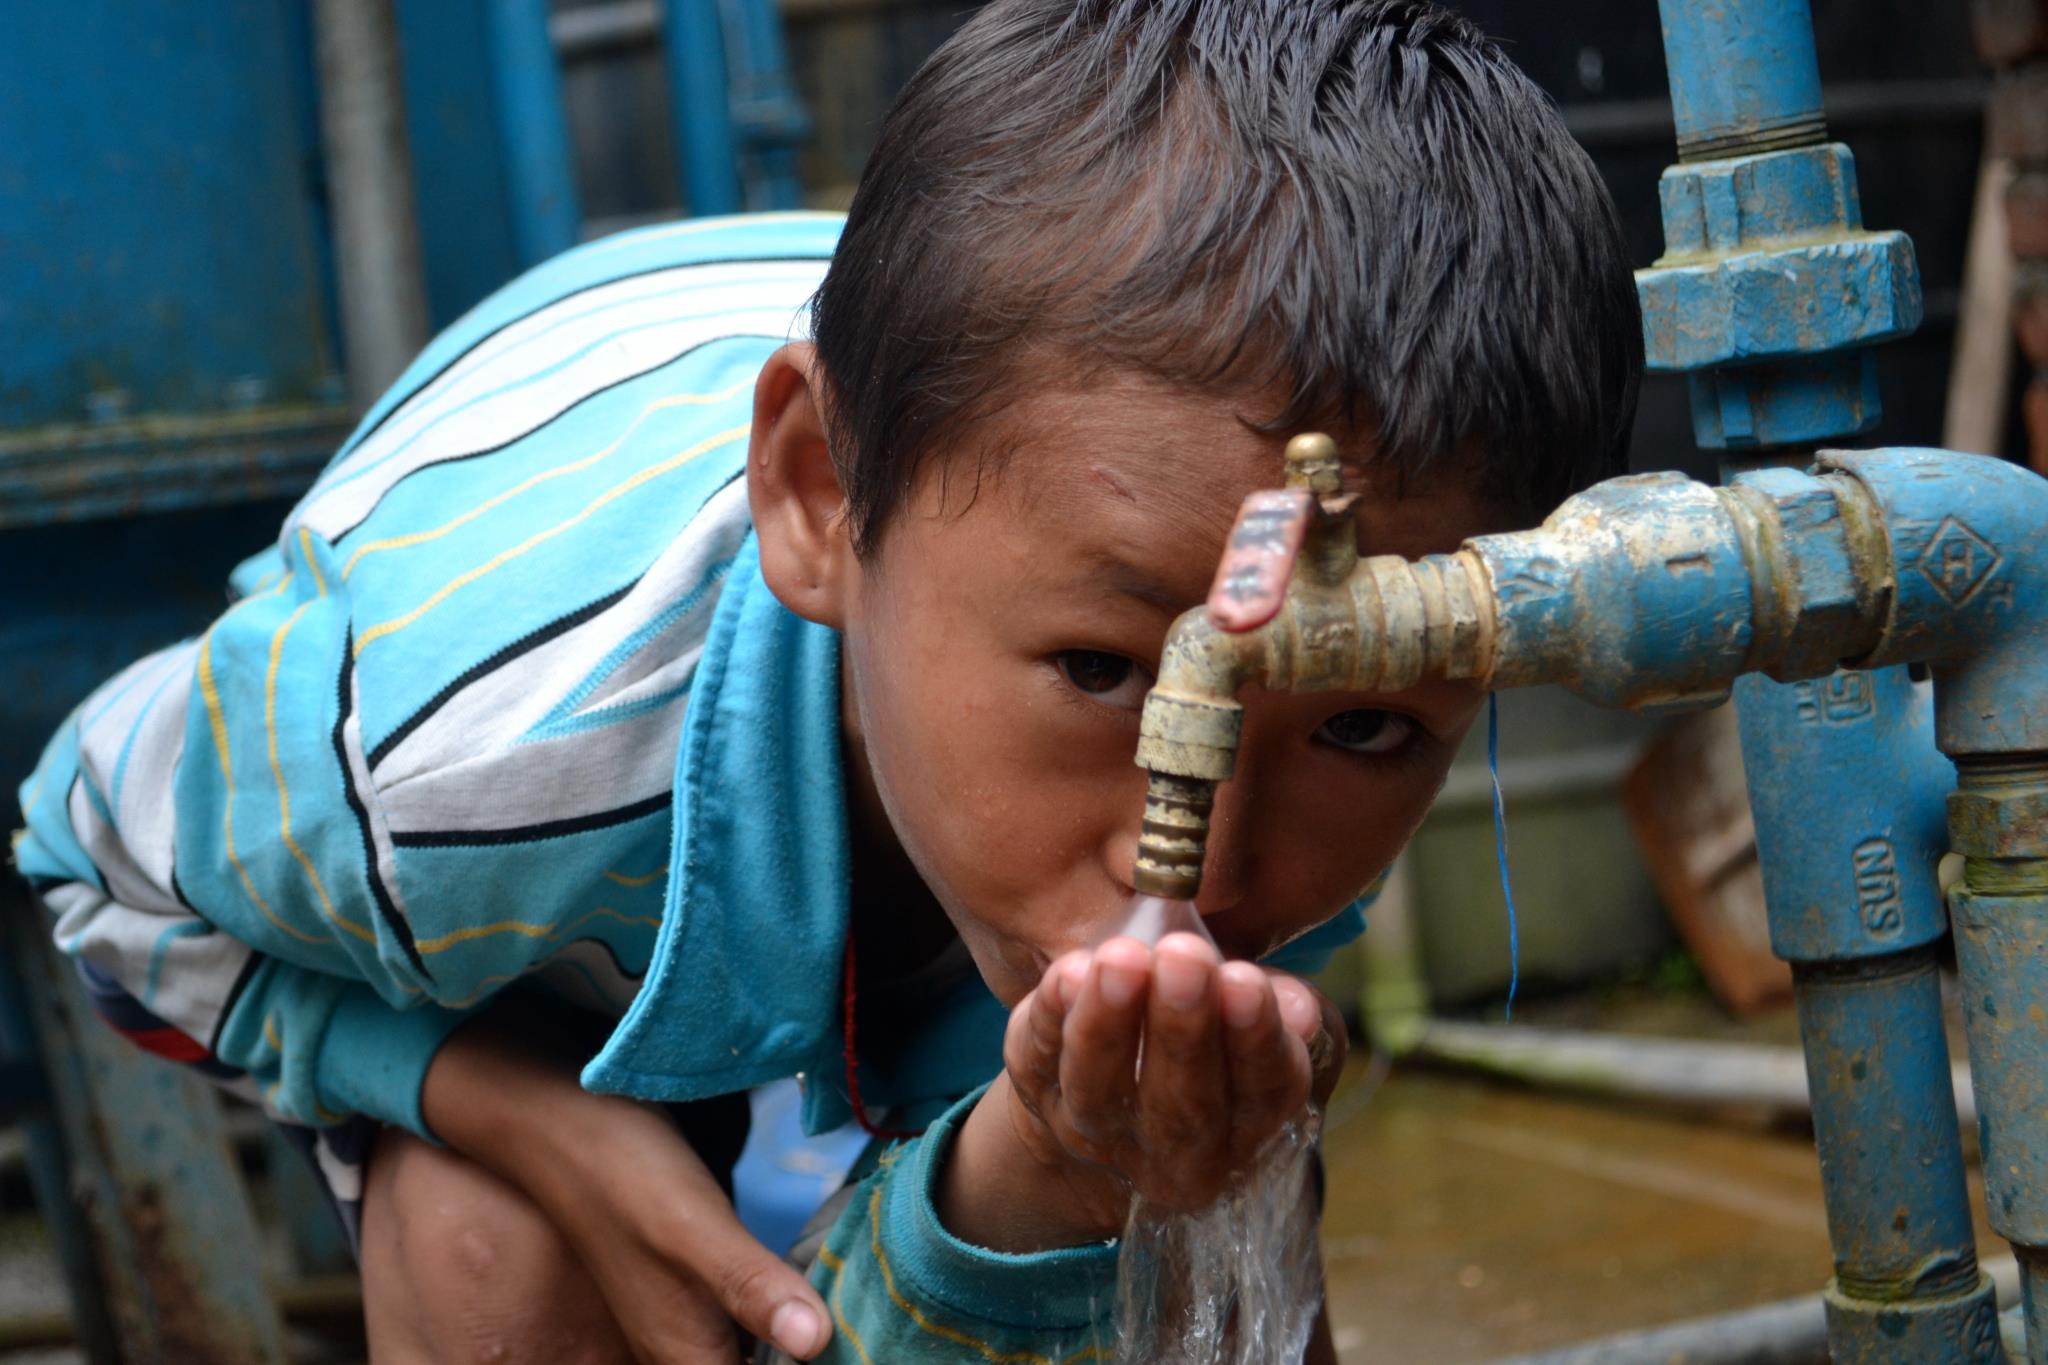 OUR BUSINESS IS CLEAN WATER